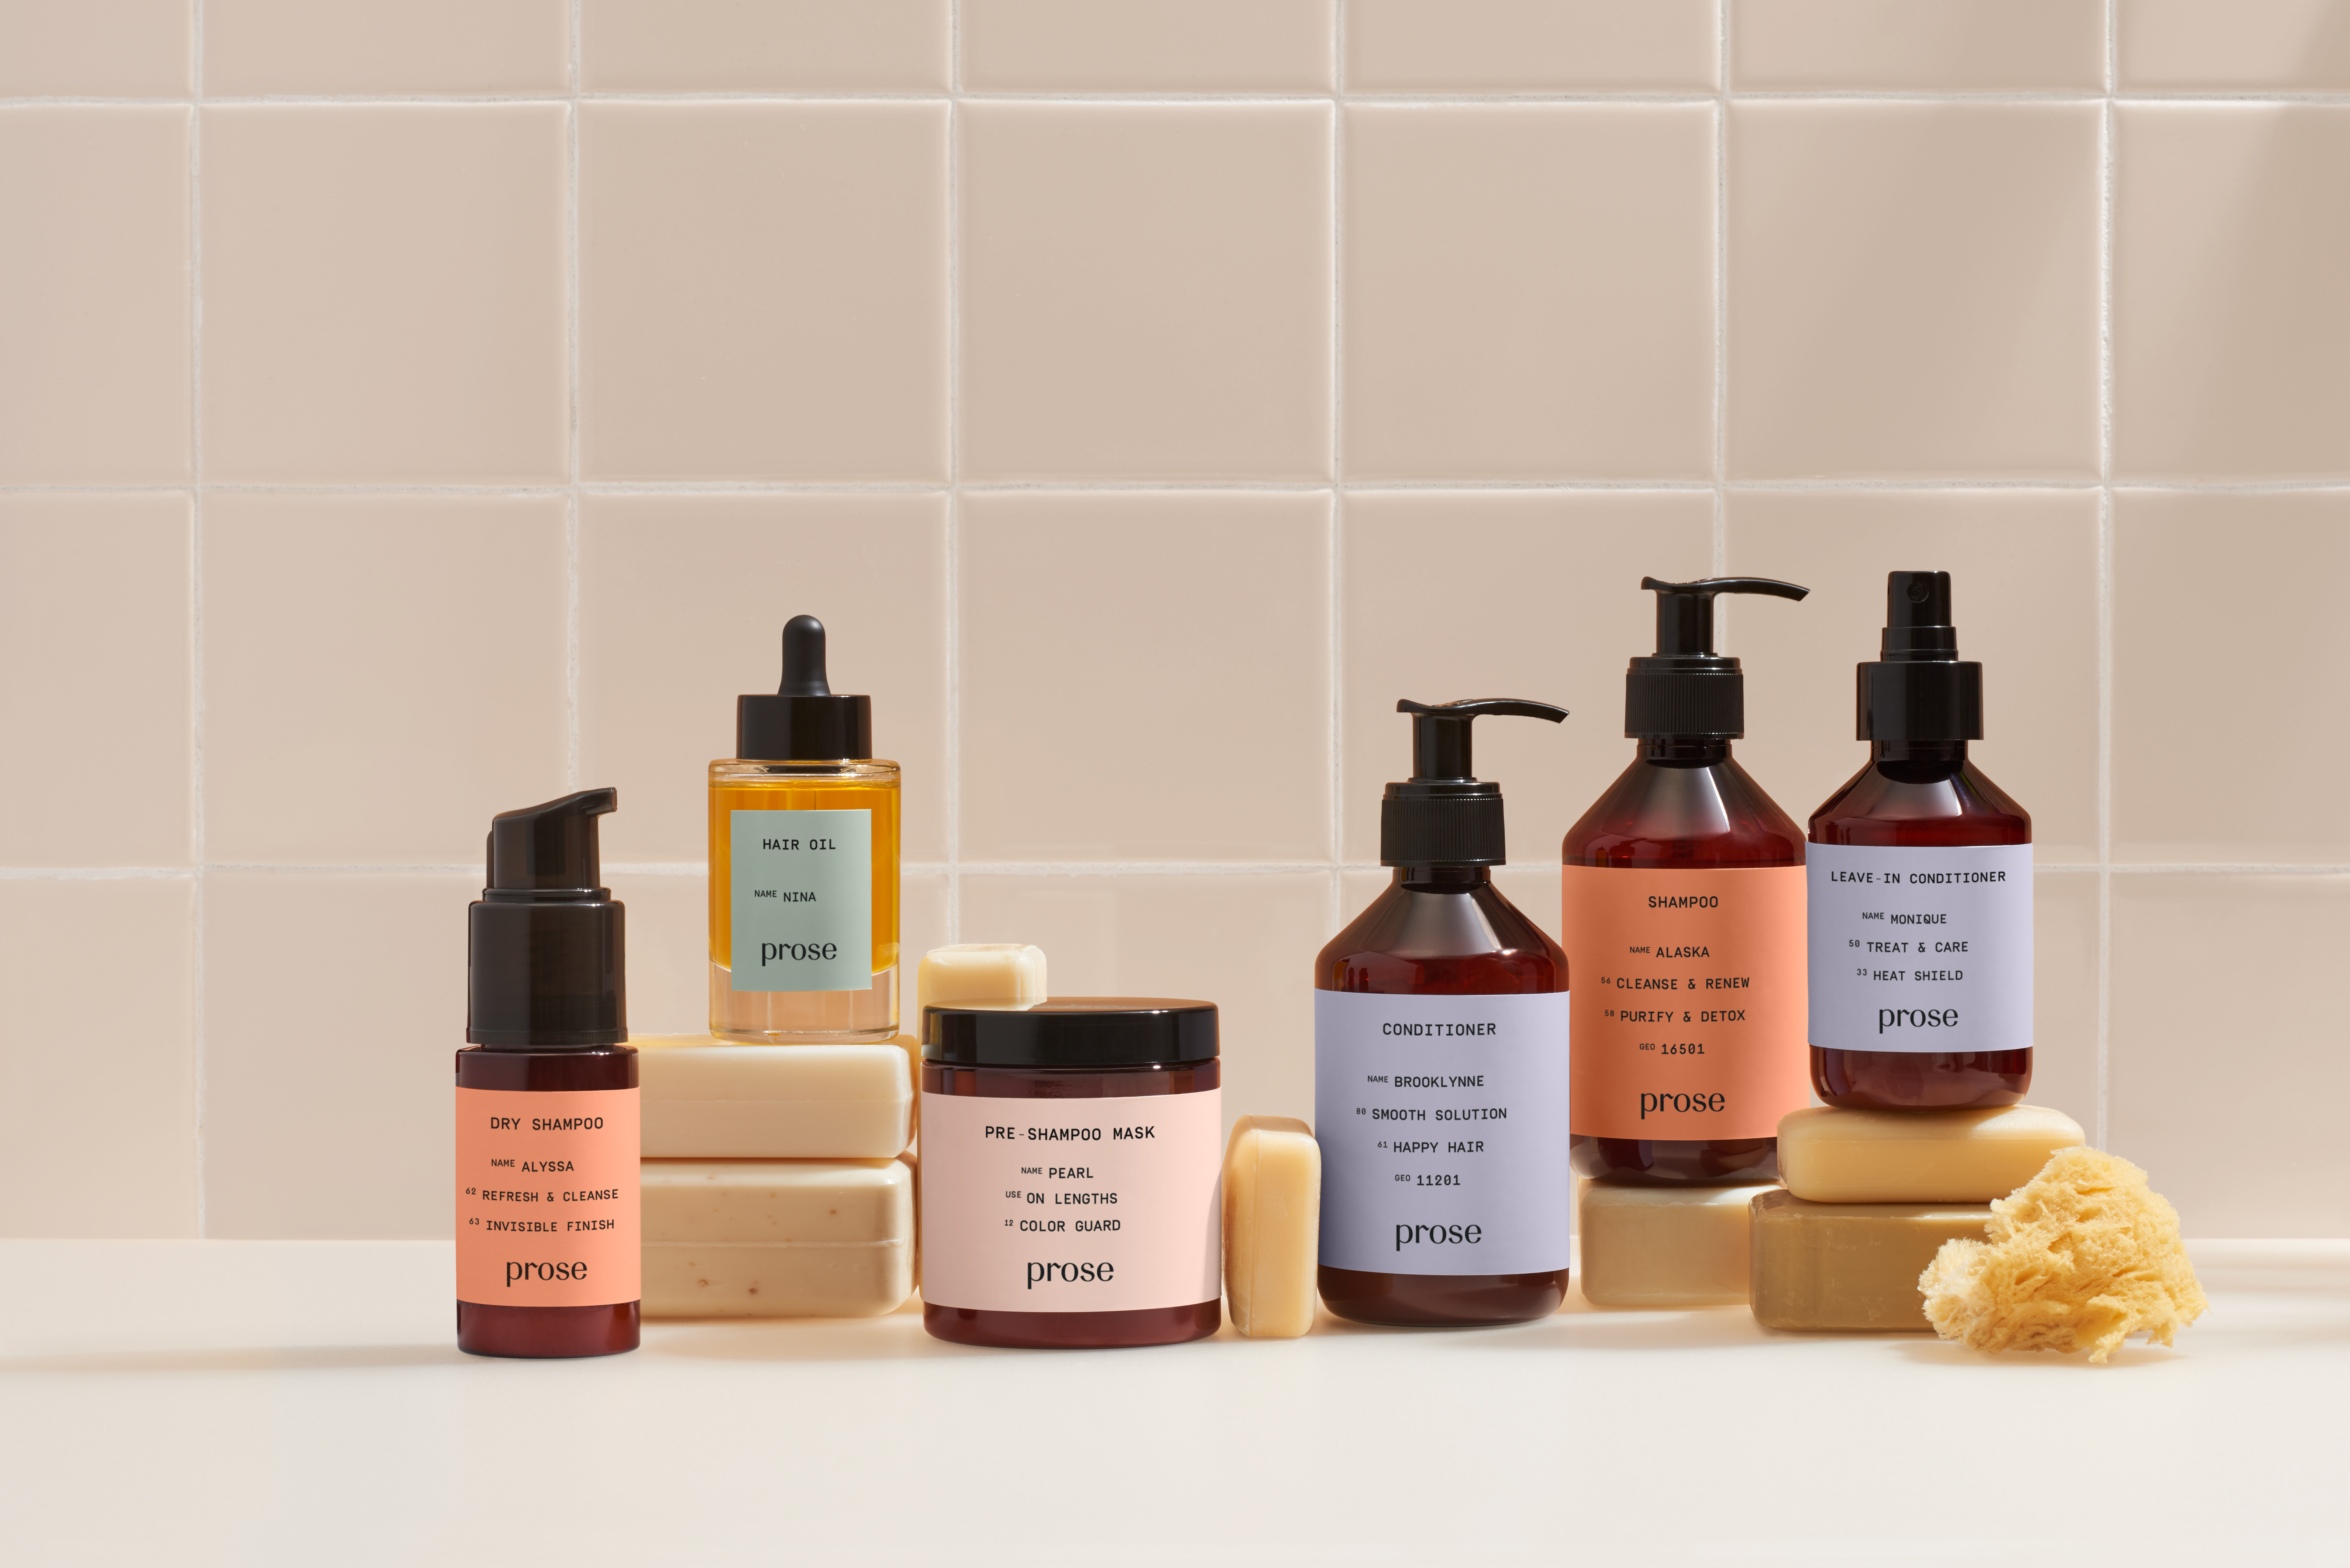 prose product collection